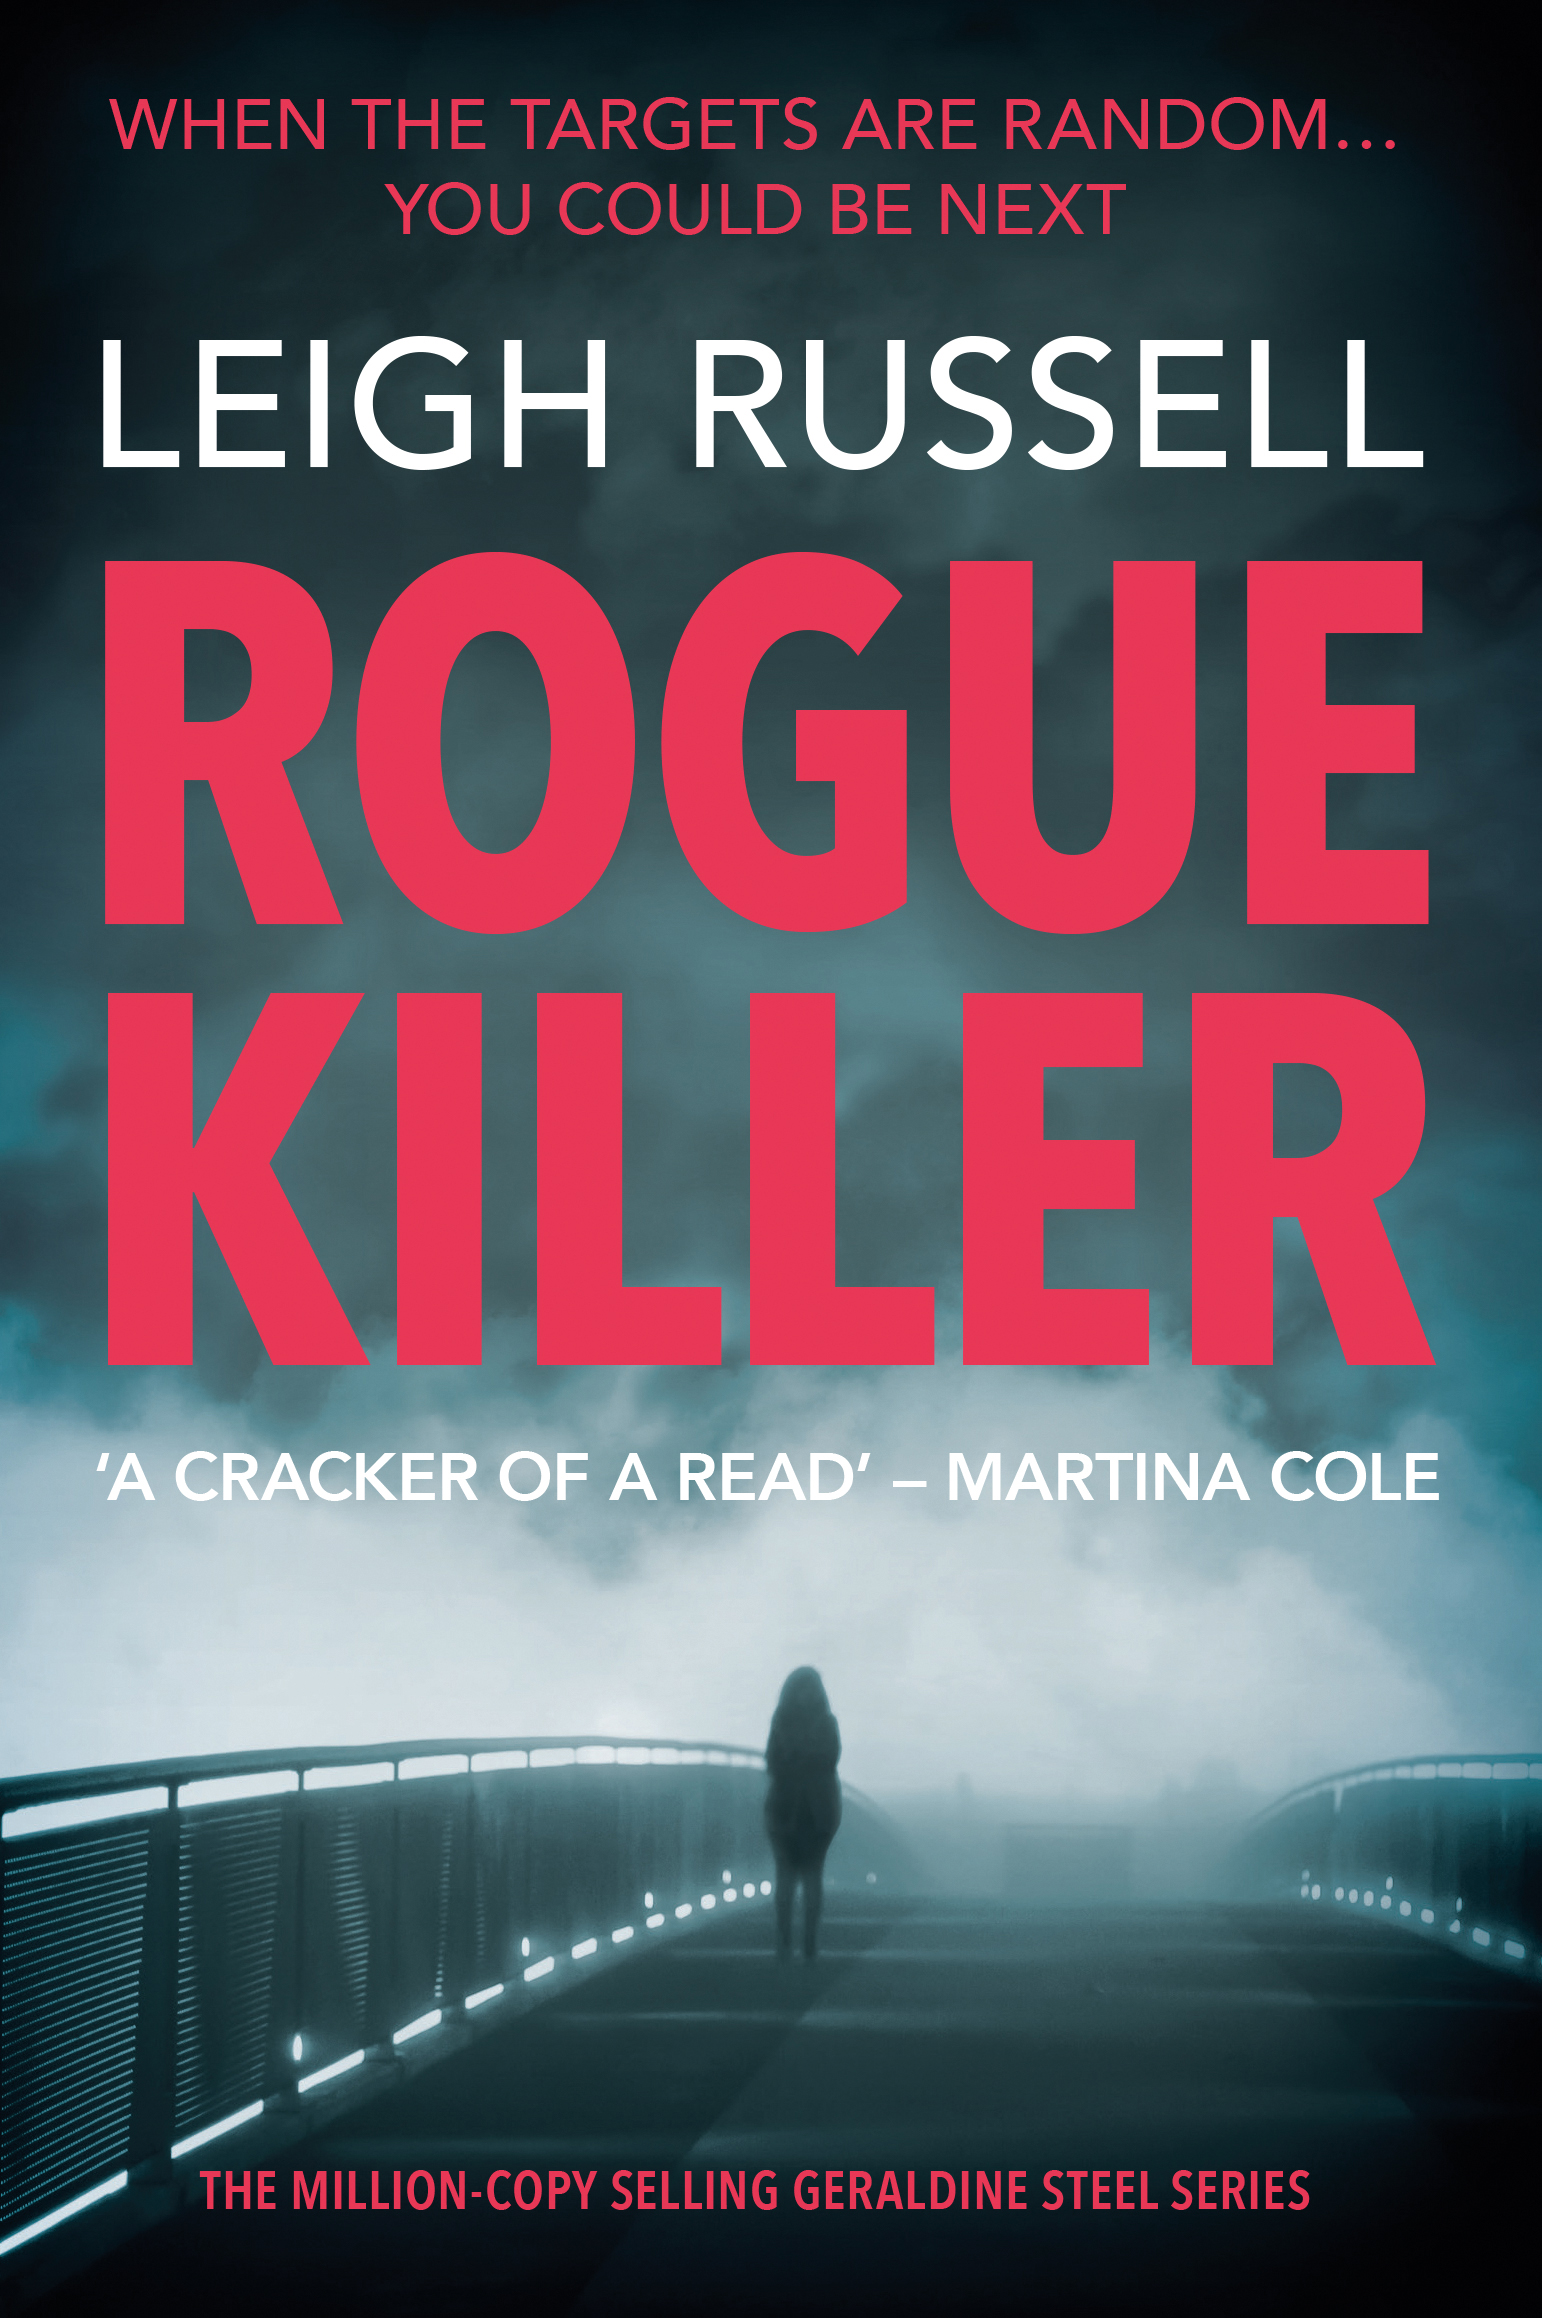 Rogue Killer | Leigh Russell | No Exit Press